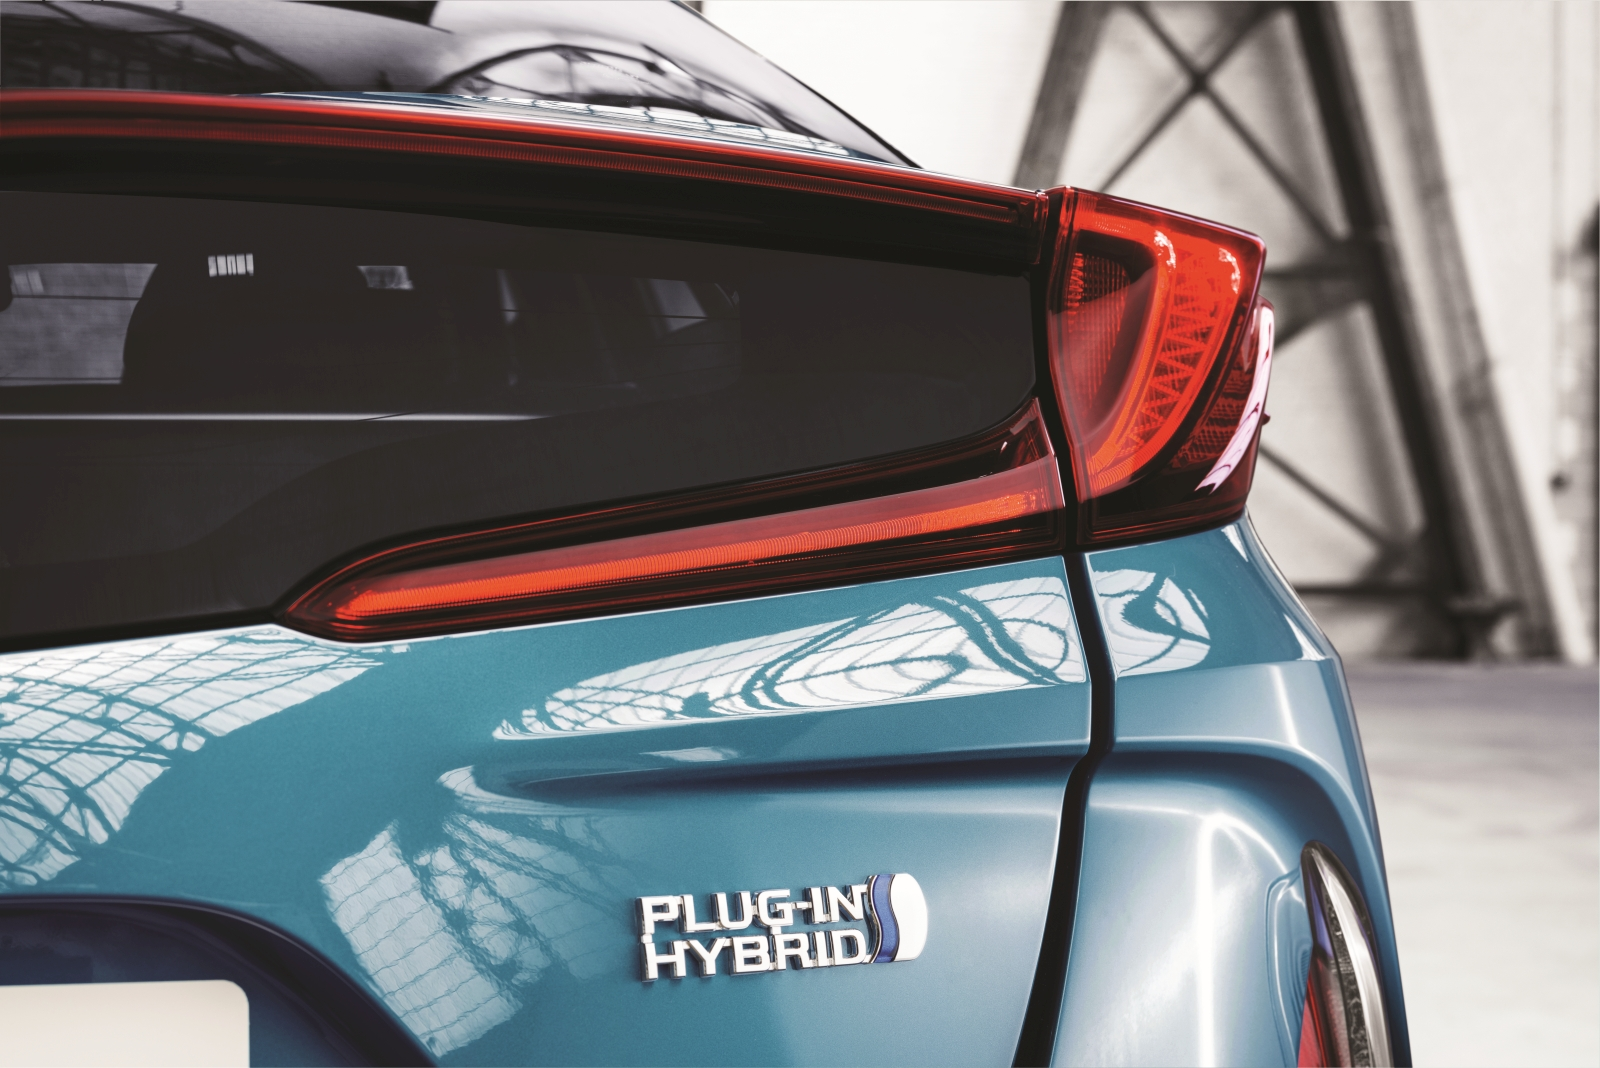 Toyota prius plug in hybrid 2017 poster toyota prius toyota and cars